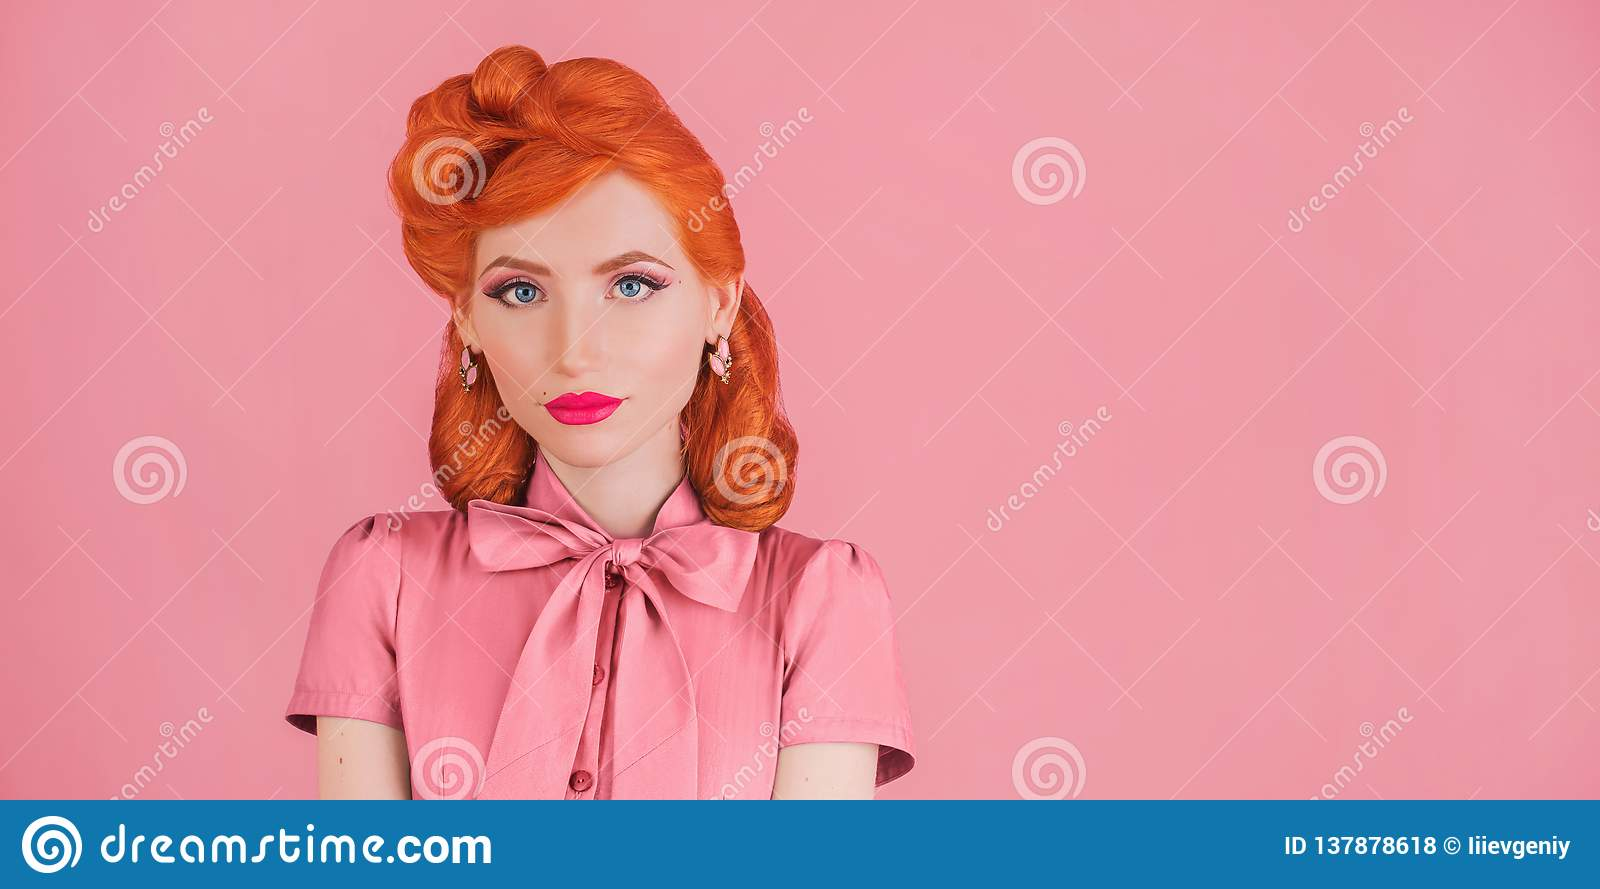 Advertise cosmetics. Woman smile with pink lipstick in retro dress. Minimal color trend in design. Redhead model with red lips